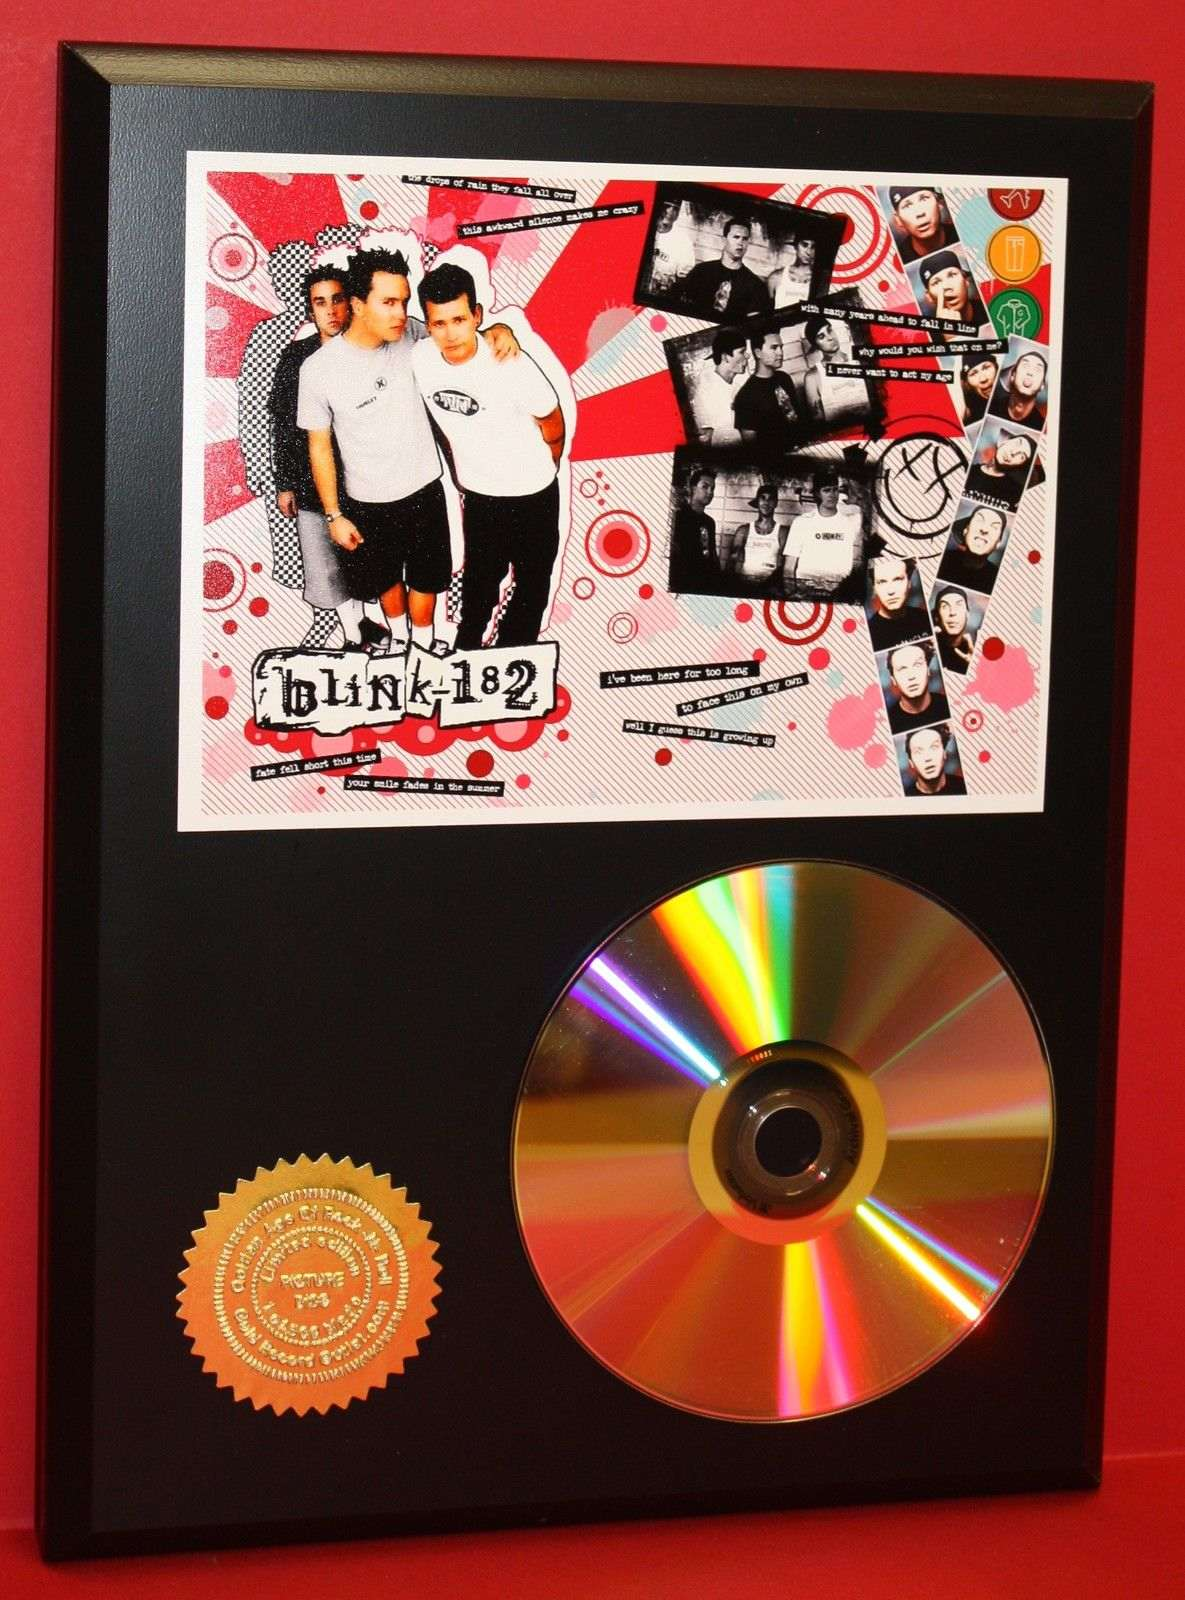 big time rush 24 kt ltd edition gold cd plaque free u s priority shipping gold record awards. Black Bedroom Furniture Sets. Home Design Ideas